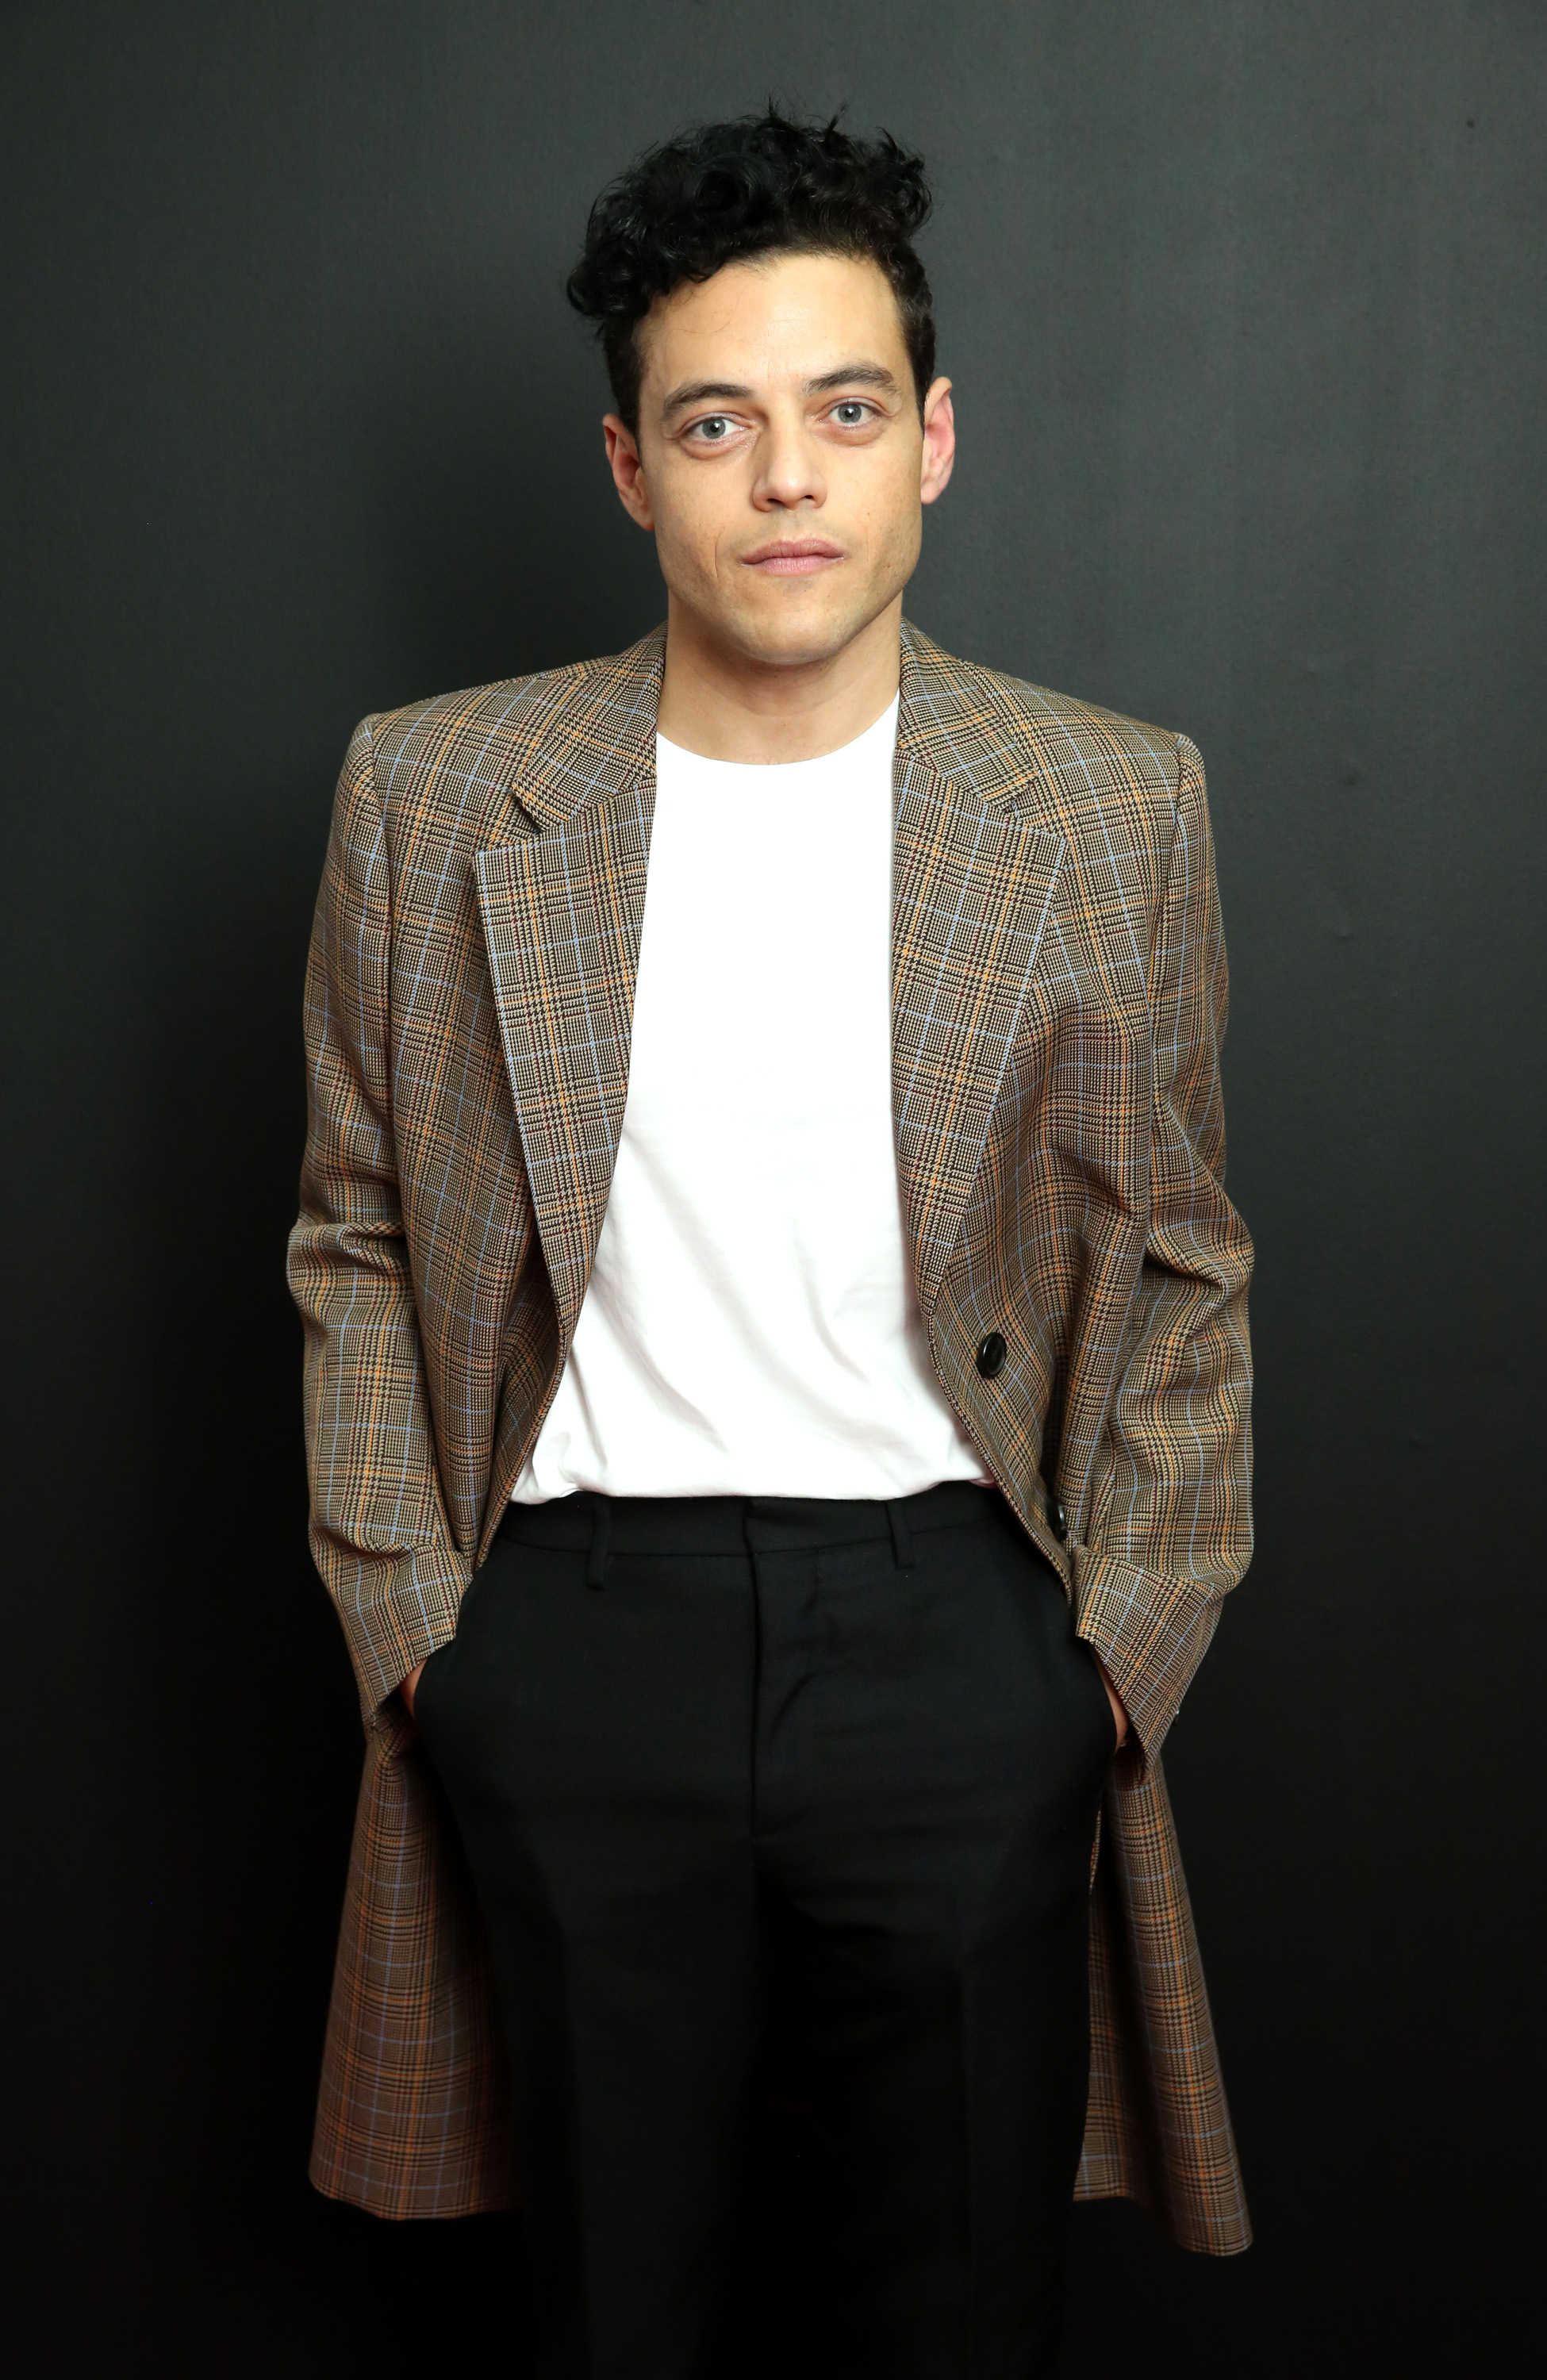 Actor Rami Malek attends the Calvin Klein Collection fashion show at the New York Stock Exchange on September 11, 2018, in New York City. (Getty)